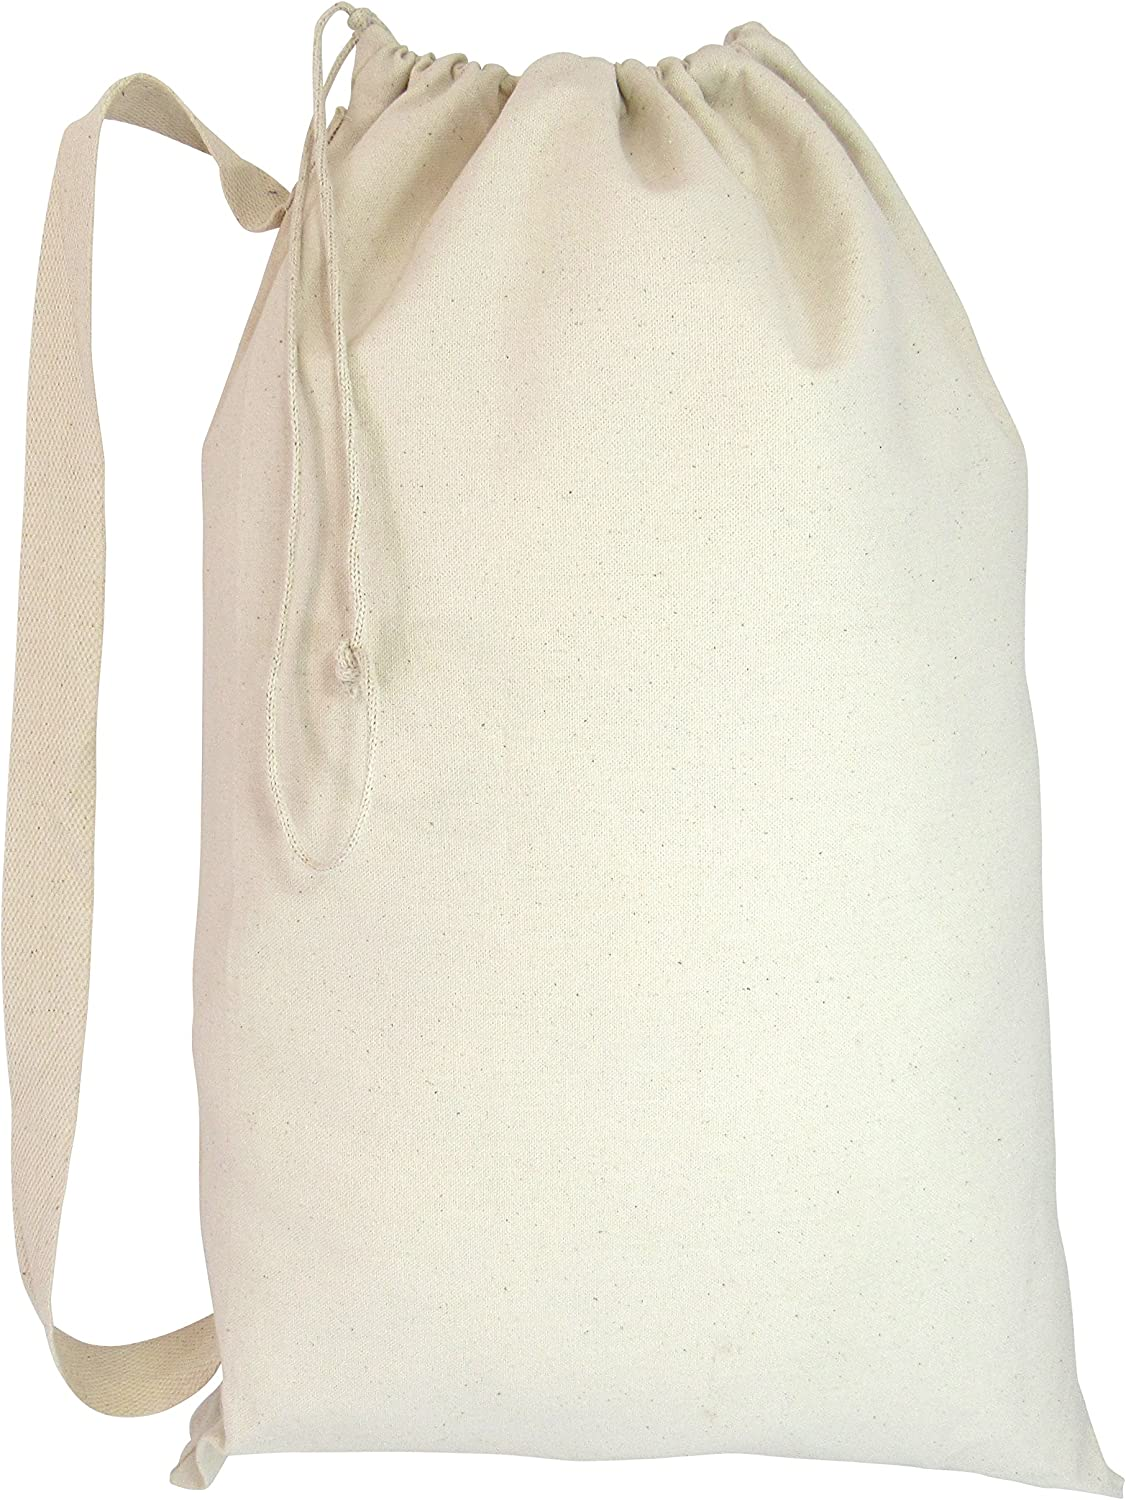 Heavy Duty 訳あり品送料無料 Natural Cotton Canvas 安売り Laundry Bags